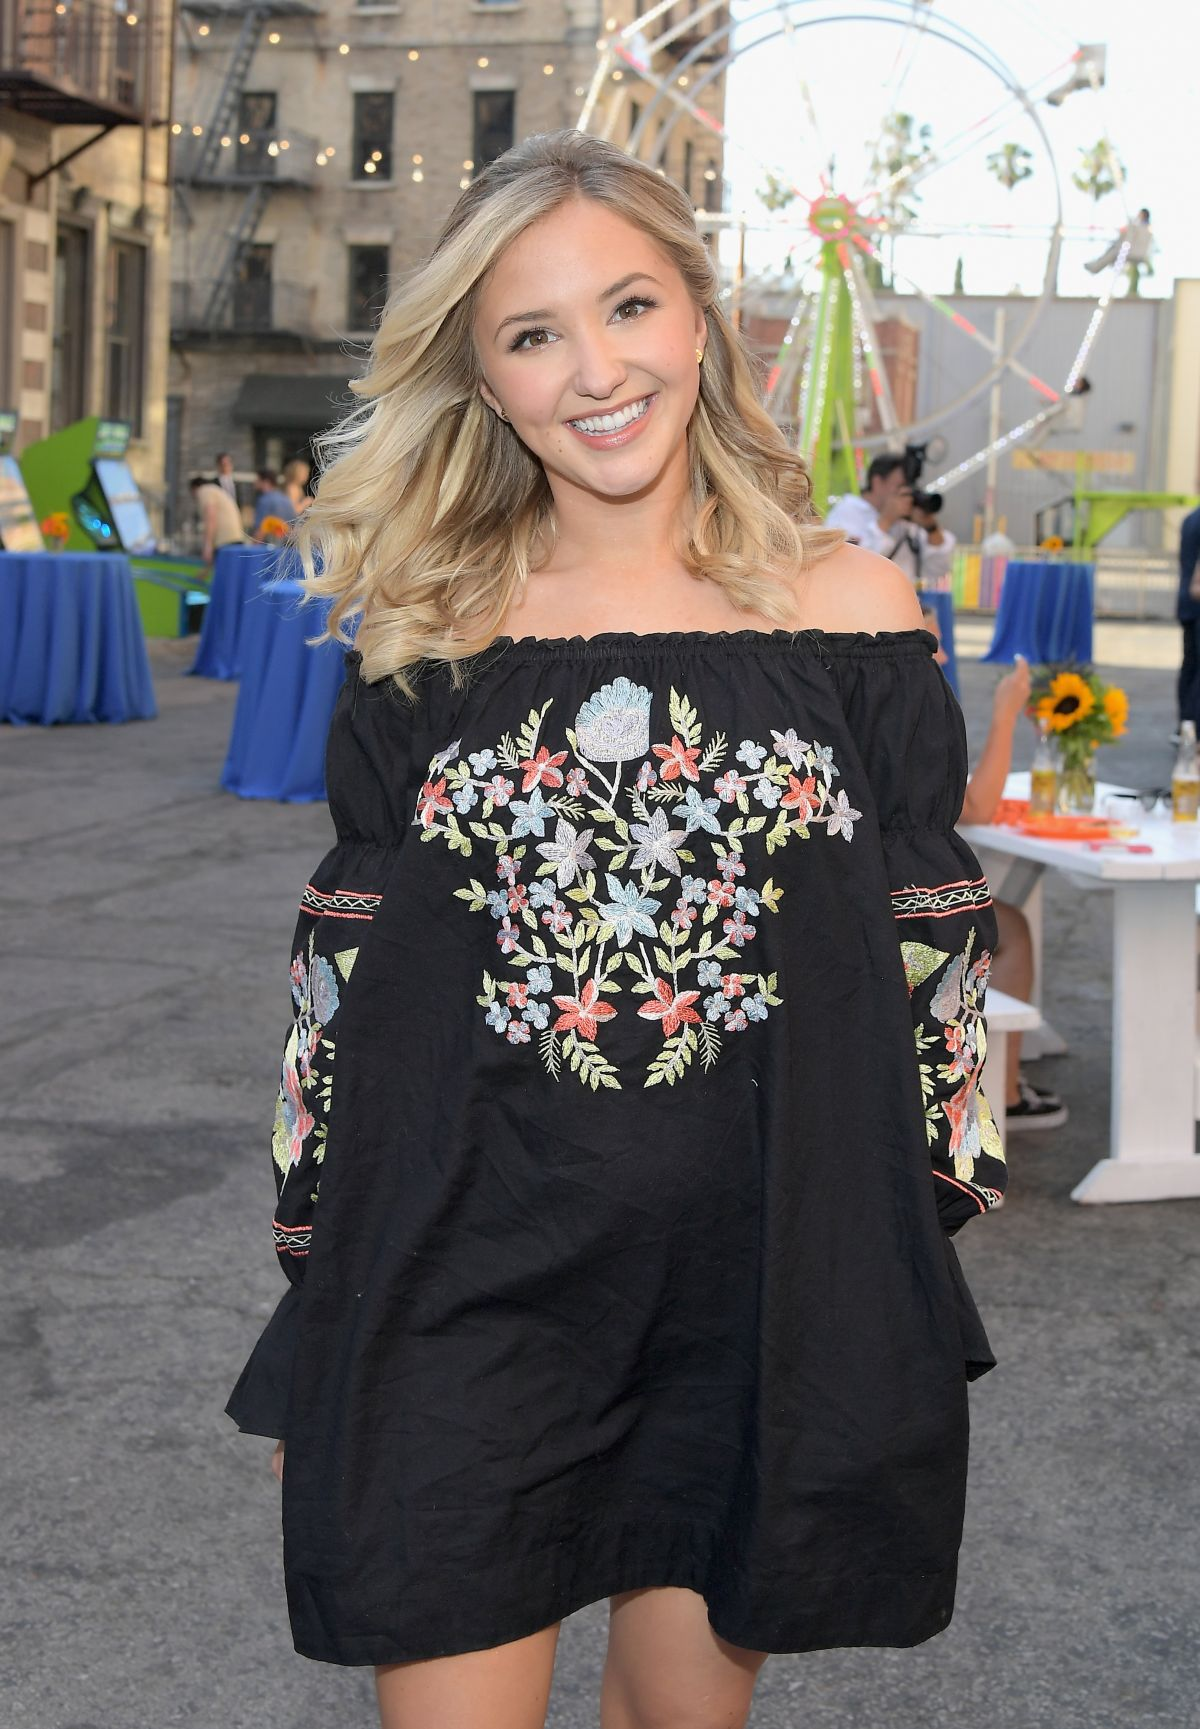 Audrey Whitby At 100th episode celebration of nickelodeon